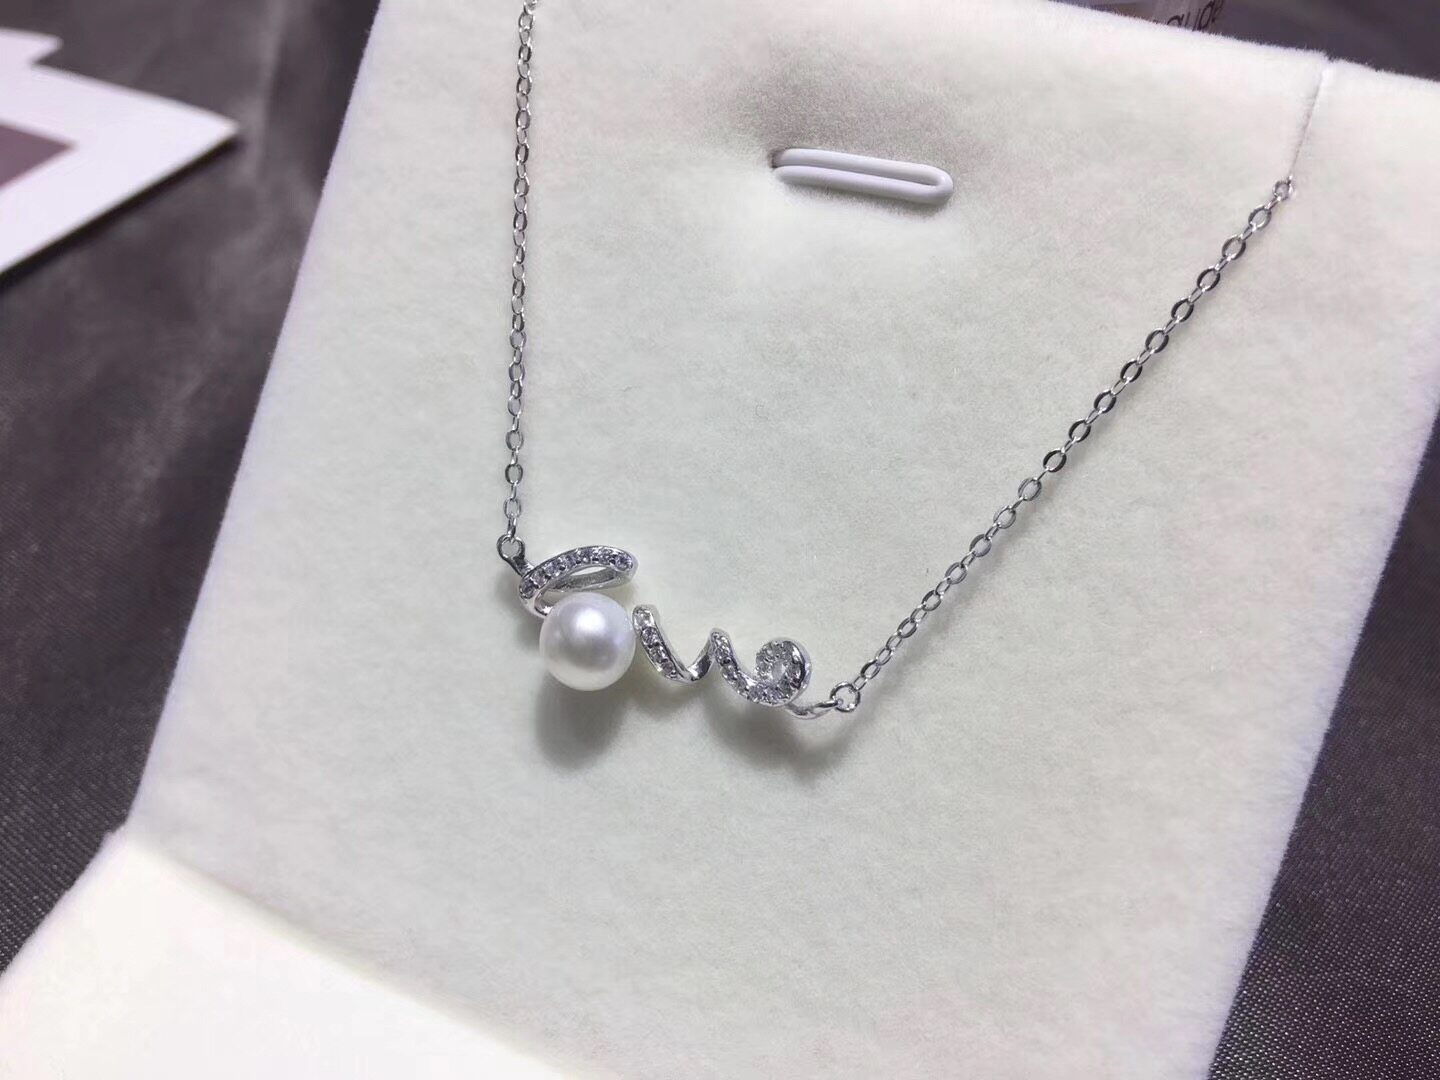 Pearl Jewelry Pendant Mounts with Chain,Real Sterling Silver 925  2